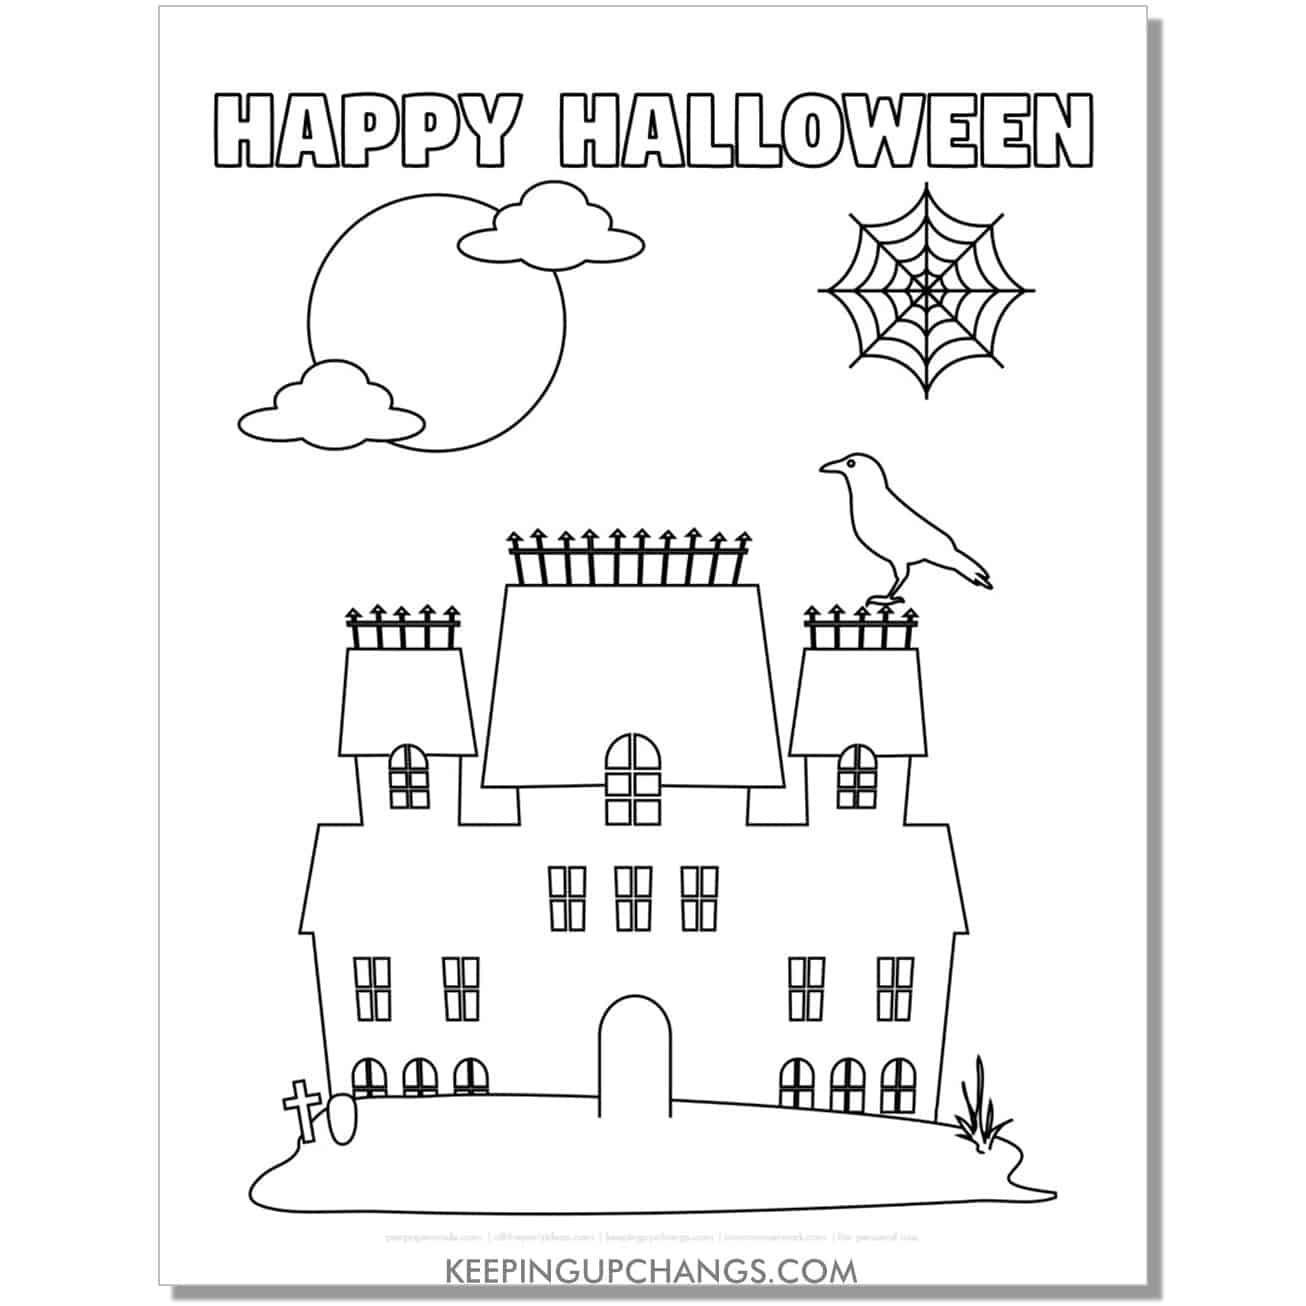 free happy halloween haunted house with crow coloring page.